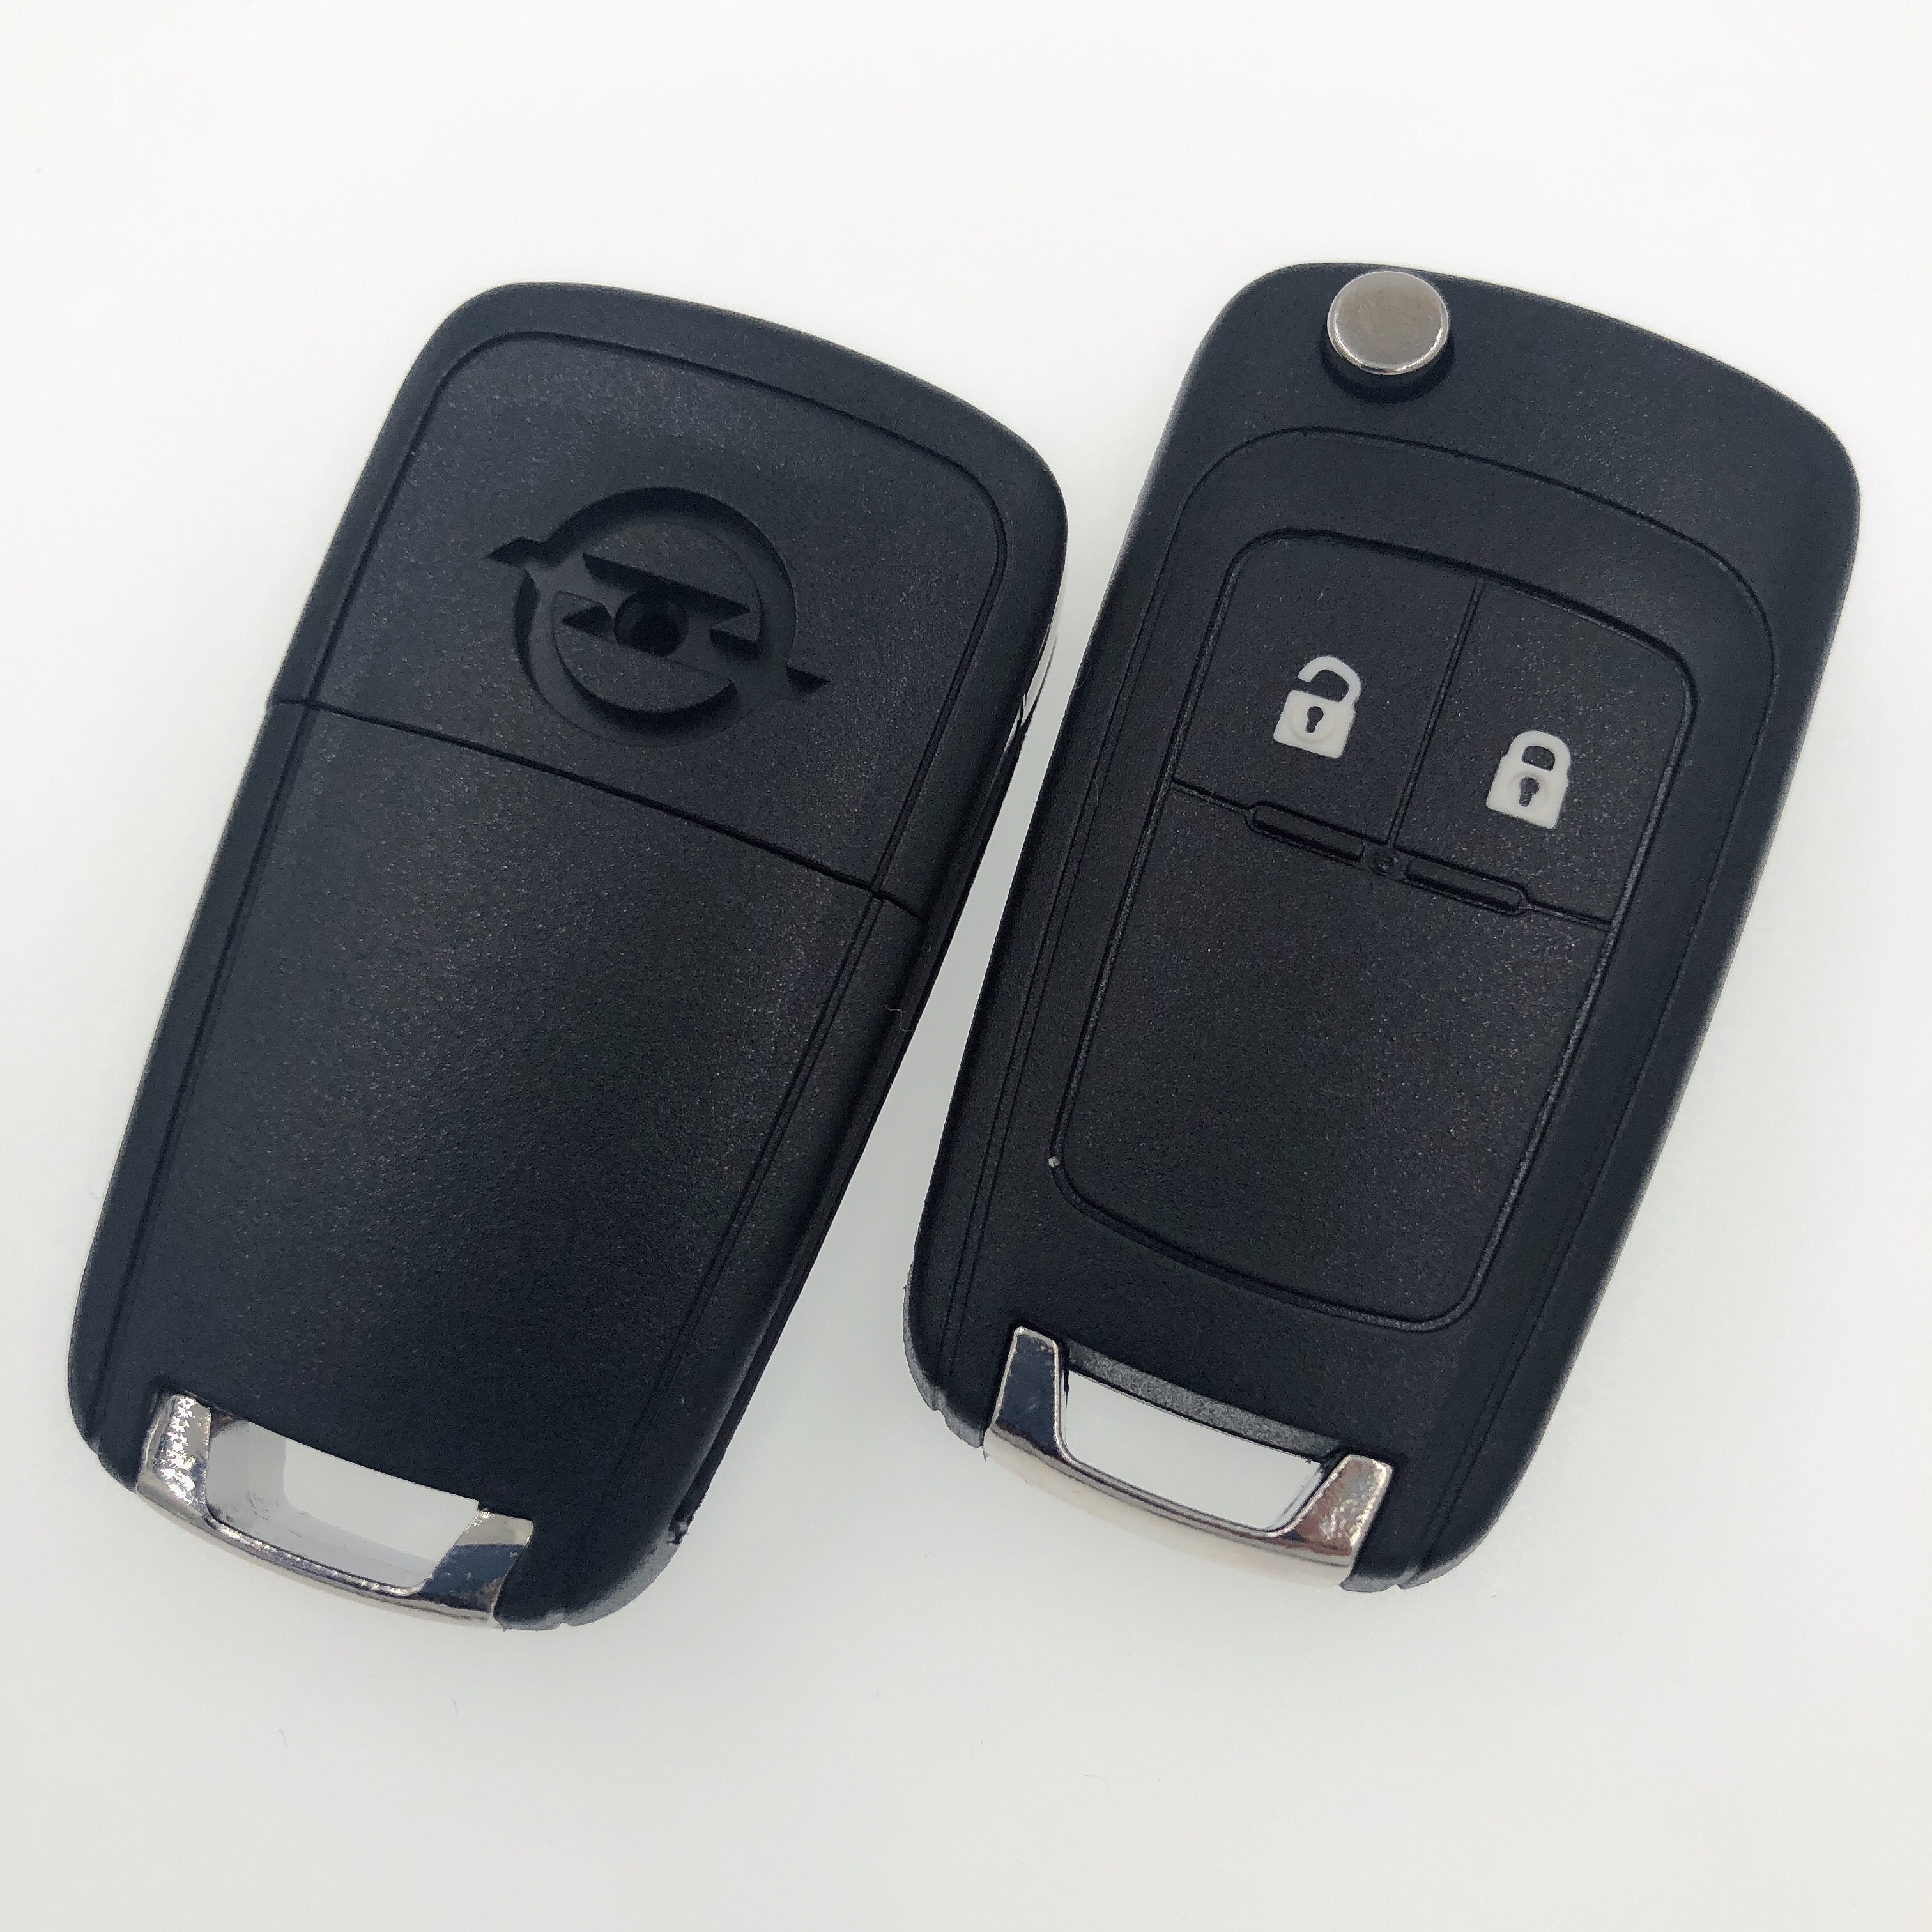 2 Button Remote Key Blank For OPEL VAUXHALL Zafira Astra Insignia Holden Flip Car Key Shell Cover Fob Case With Screw